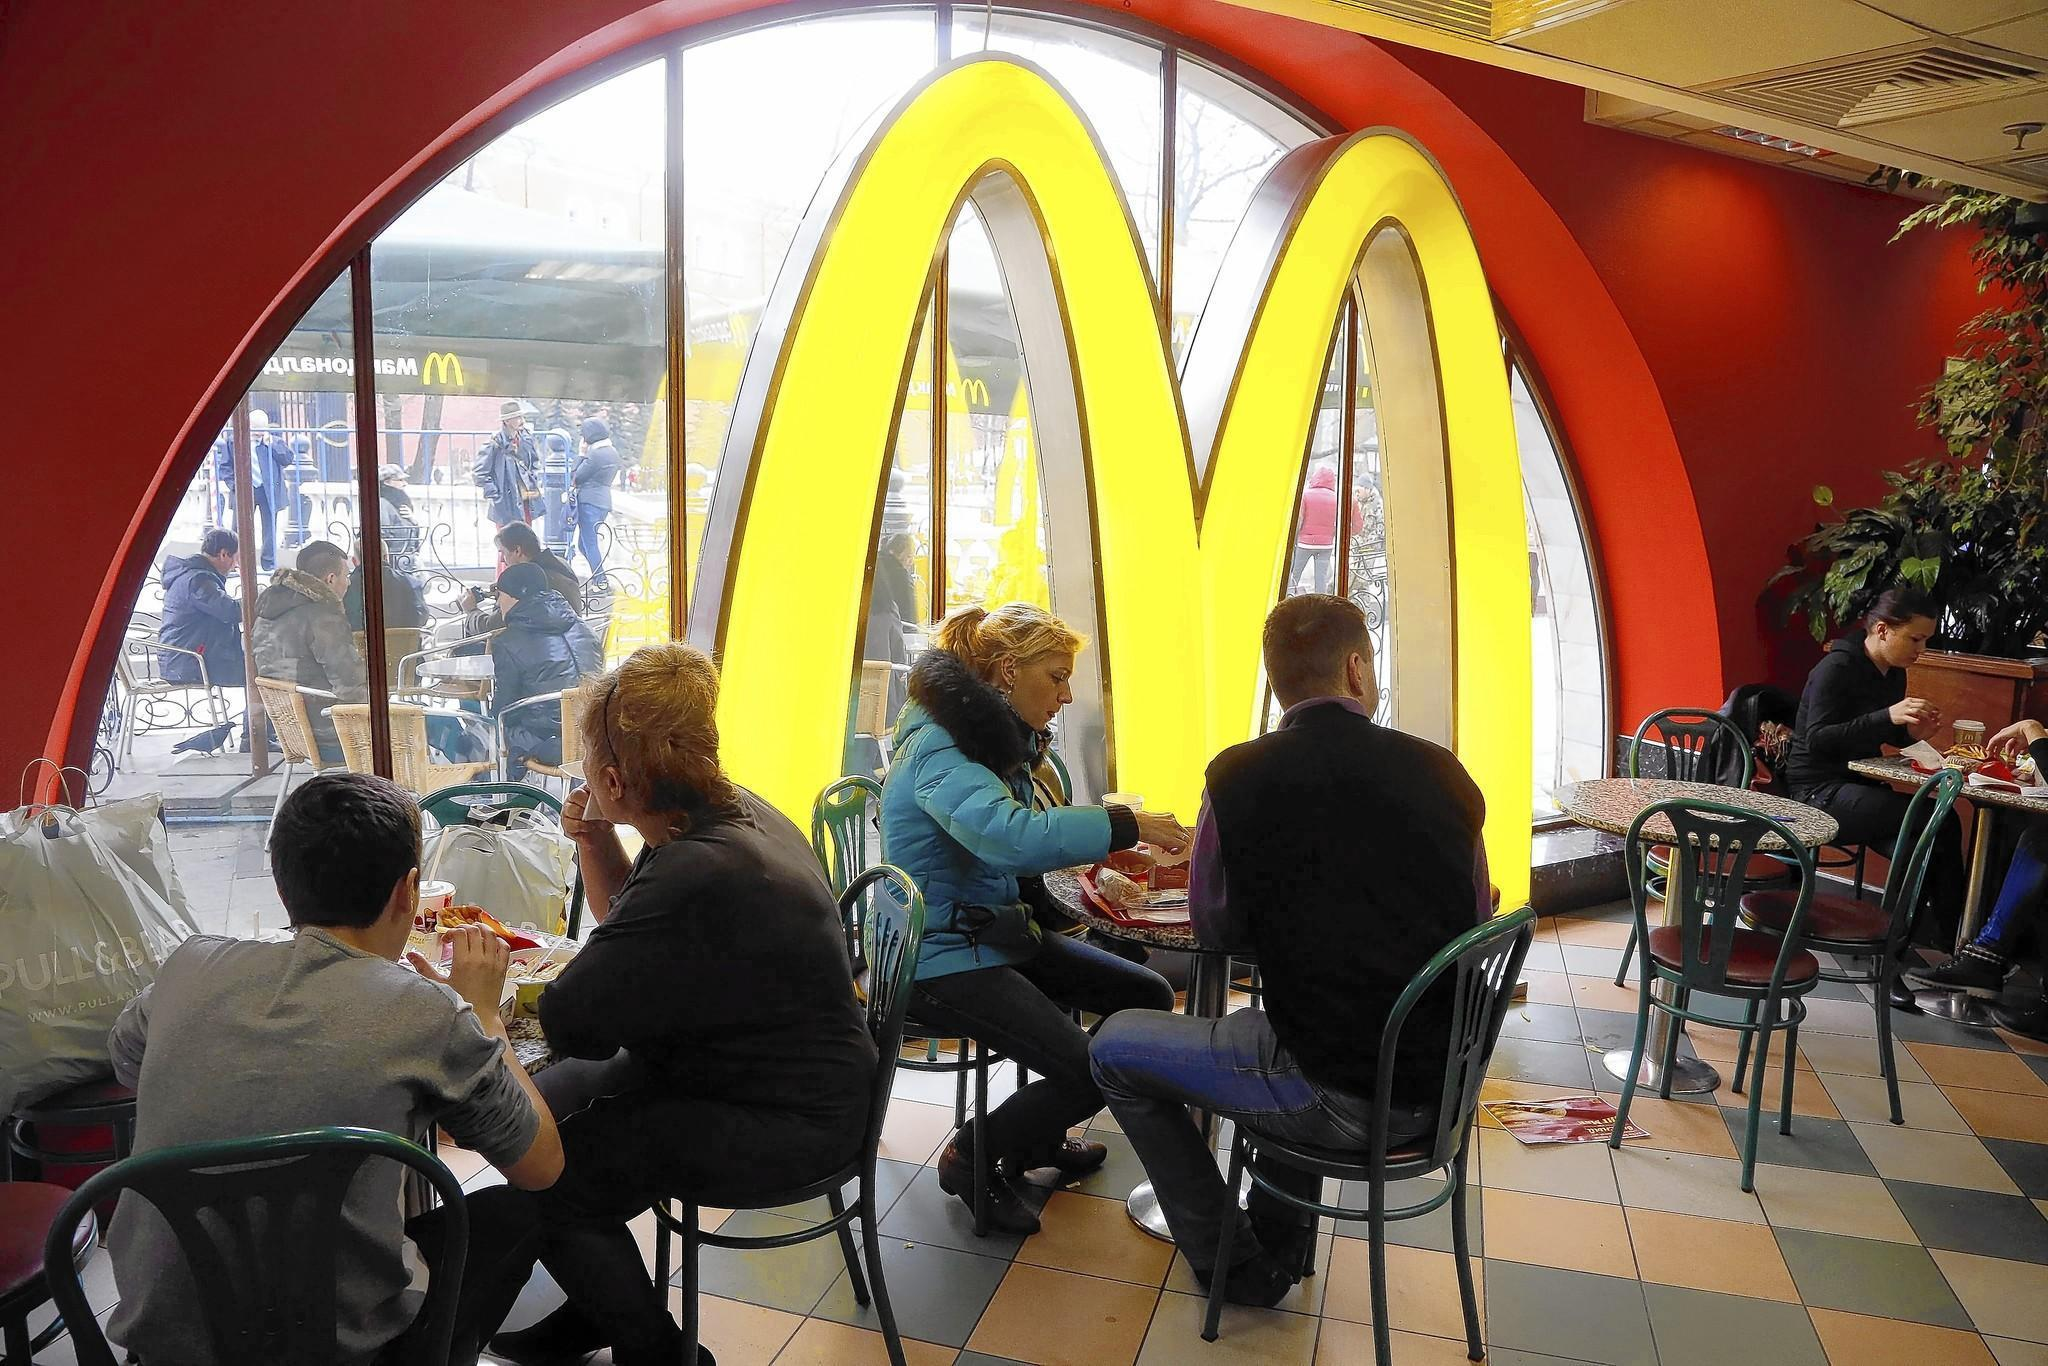 Customers dine at a McDonald's restaurant in Moscow.